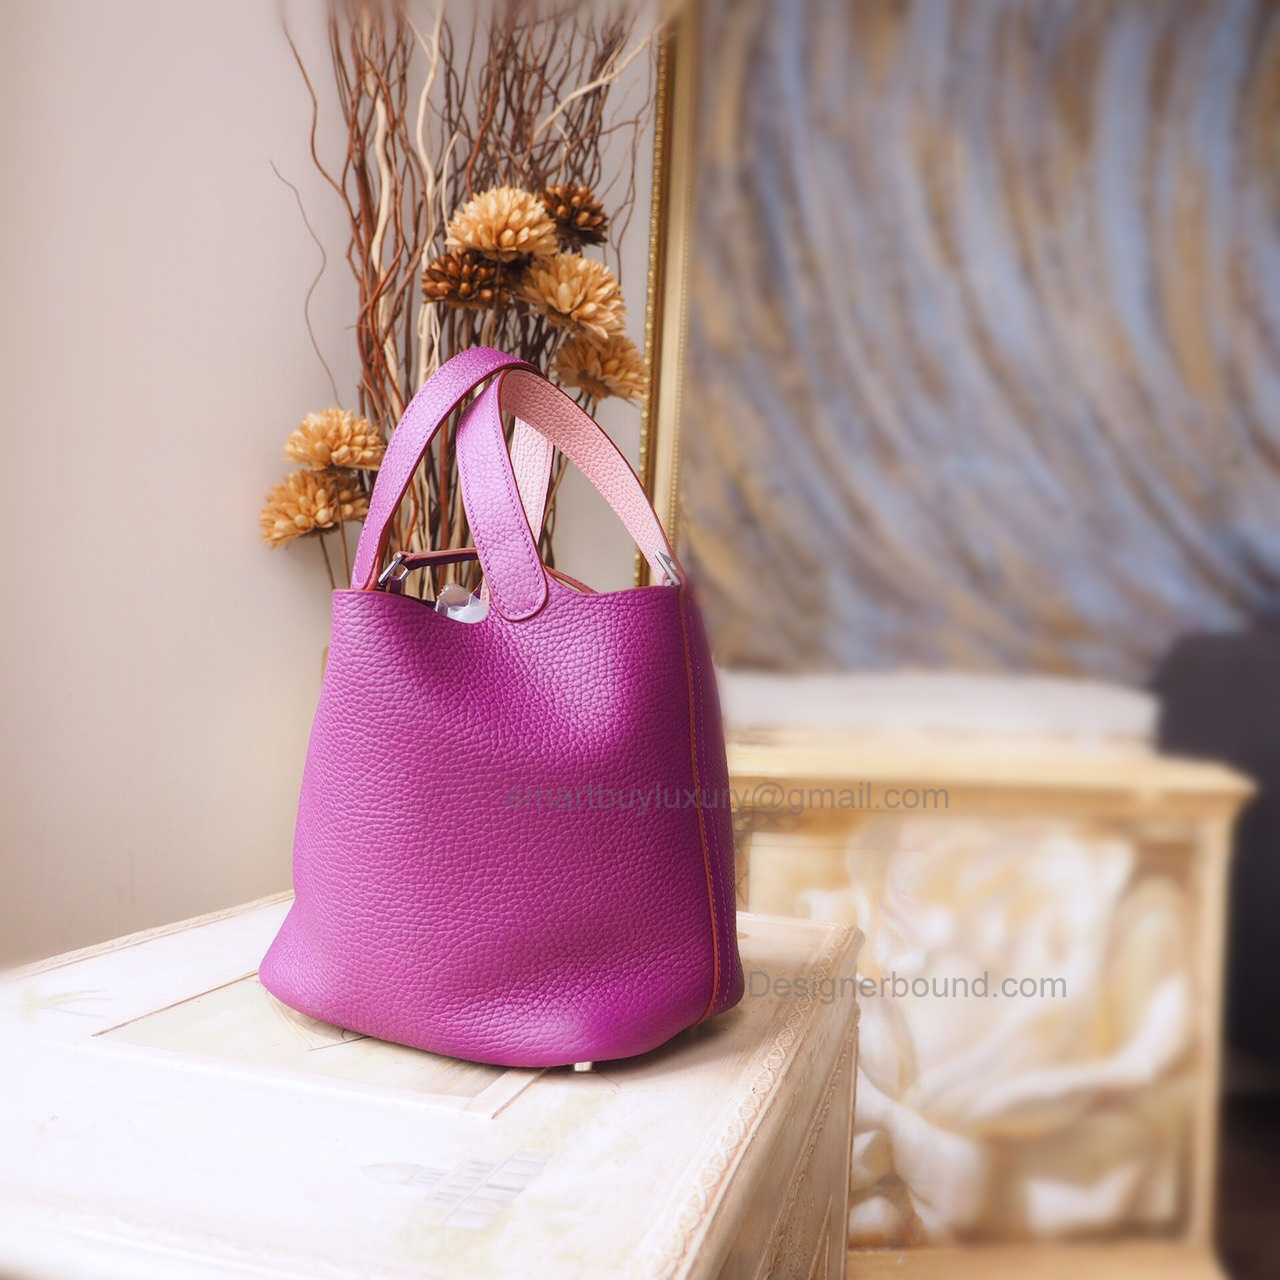 Replica Hermes Picotin Lock 22 Bag Handmade in Bicolored p9 Anemone Clemence